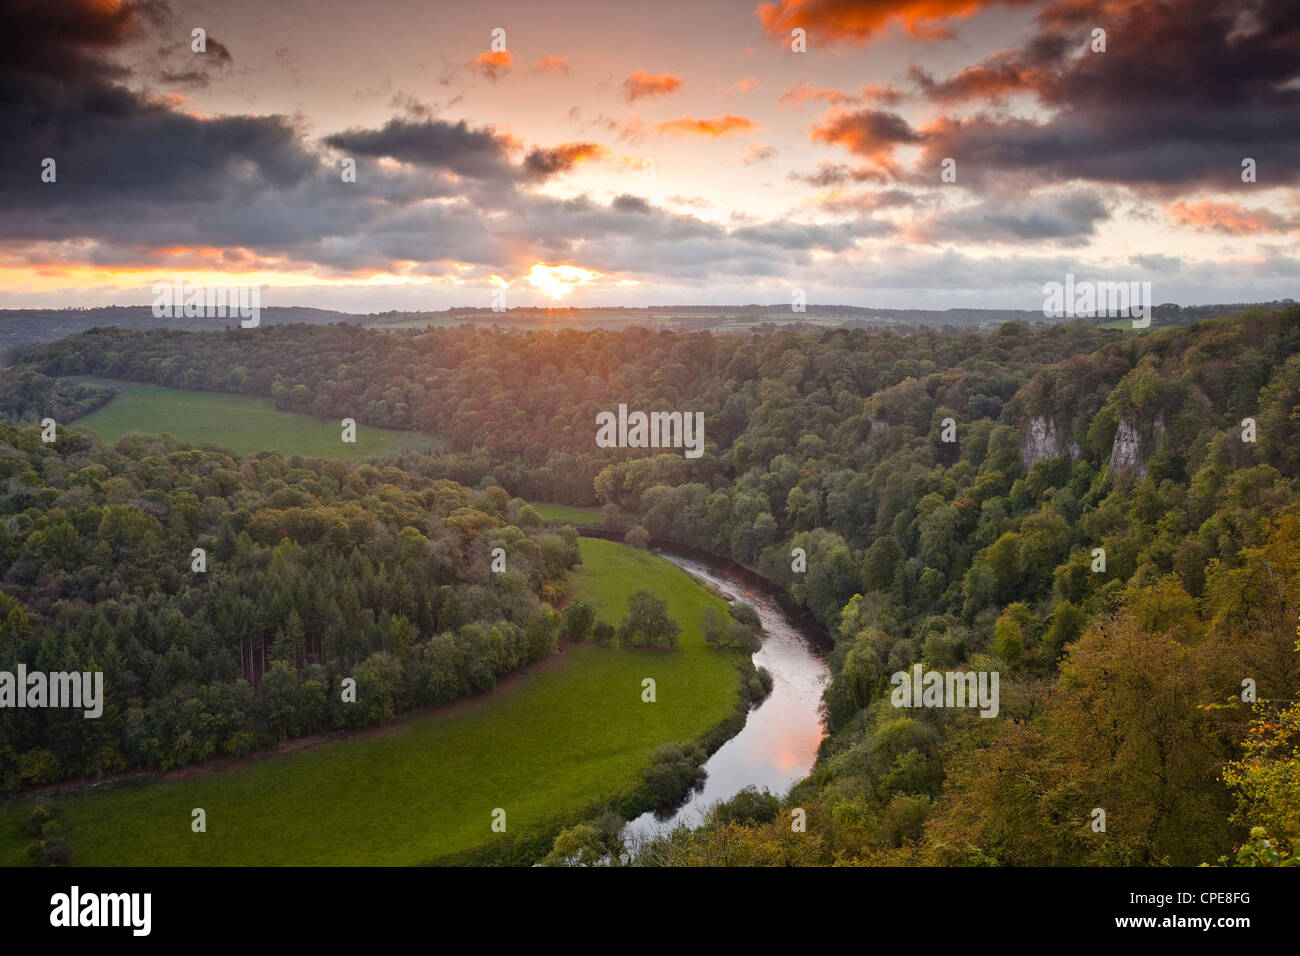 Looking down on the River Wye from Symonds Yat rock, Herefordshire, England, United Kingdom, Europe - Stock Image